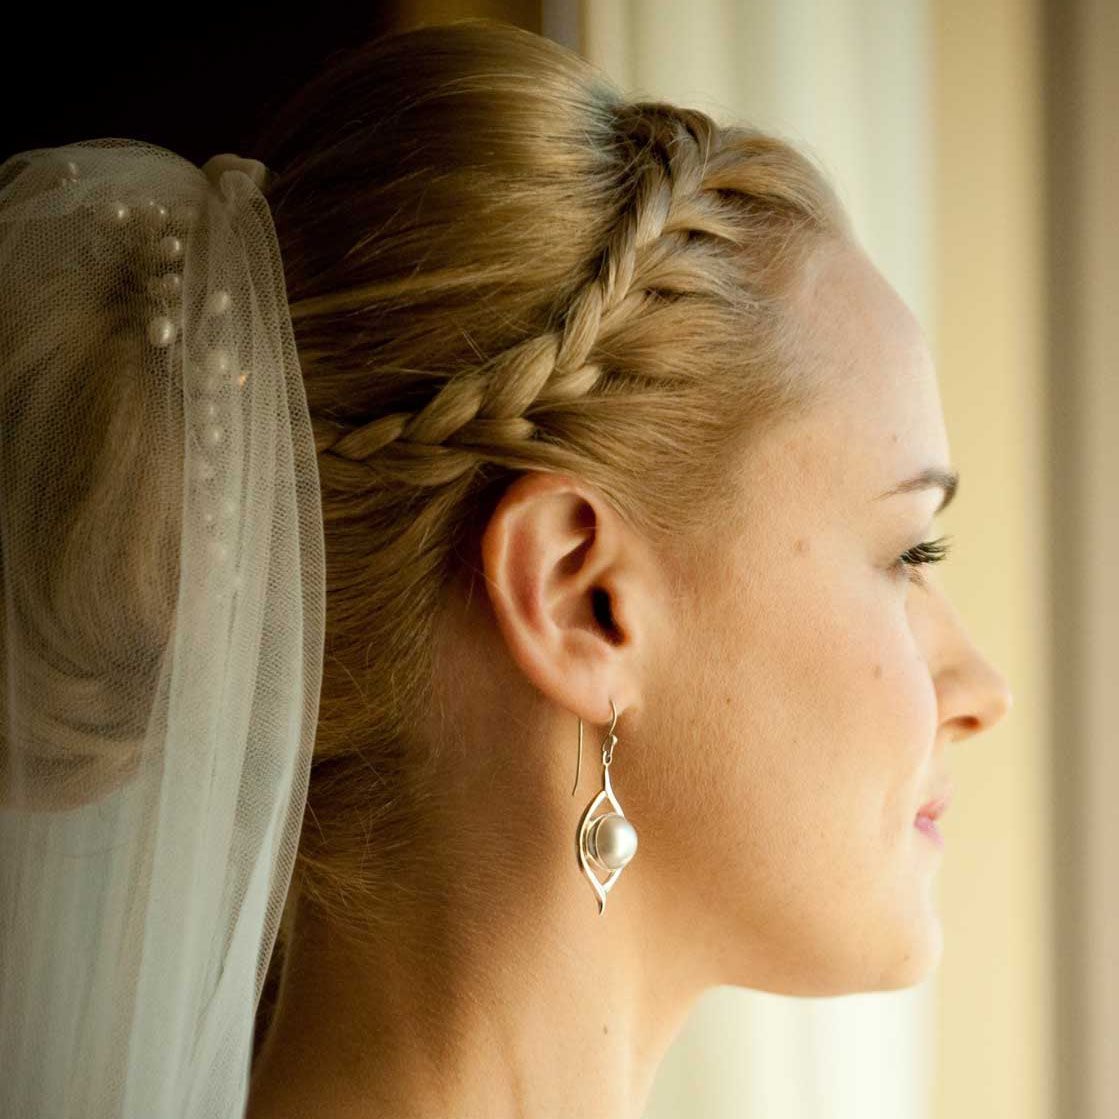 Wedding Day French Braid Into A Bun Braided Hairstyles For Wedding Wedding Hair And Makeup Wedding Hairstyles With Veil